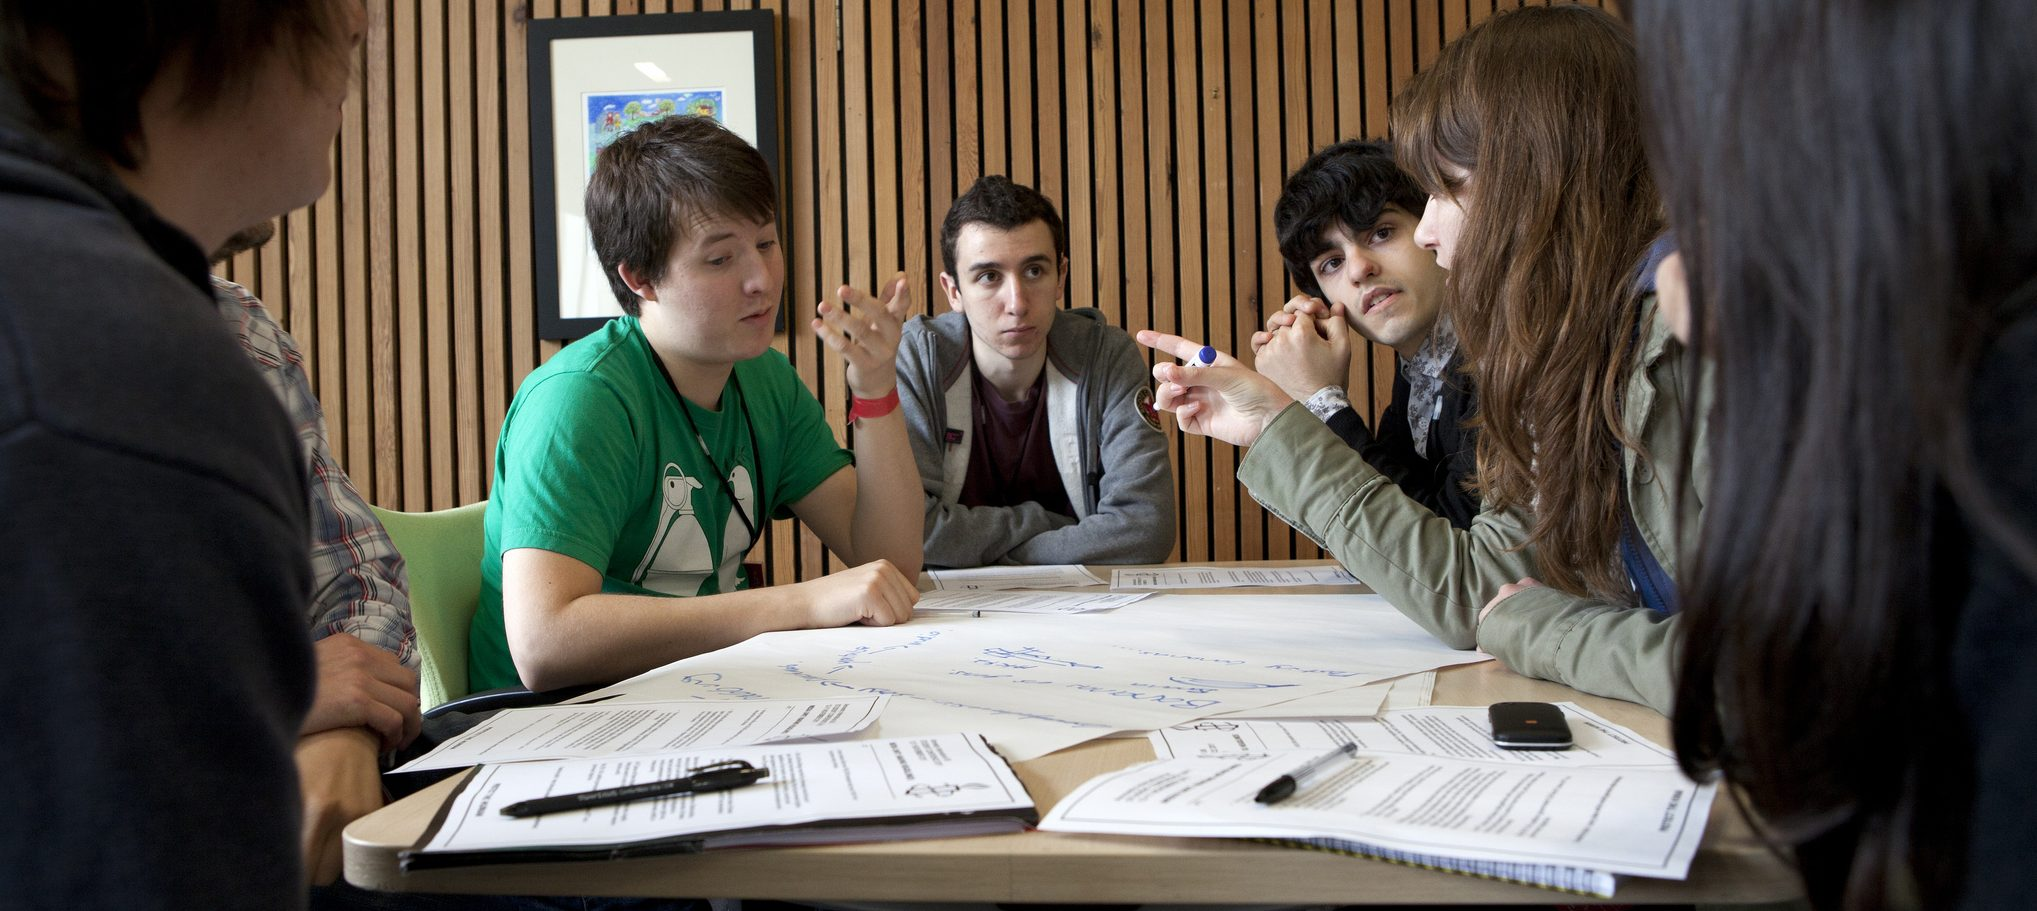 group of students talking over a table with papers and pens around